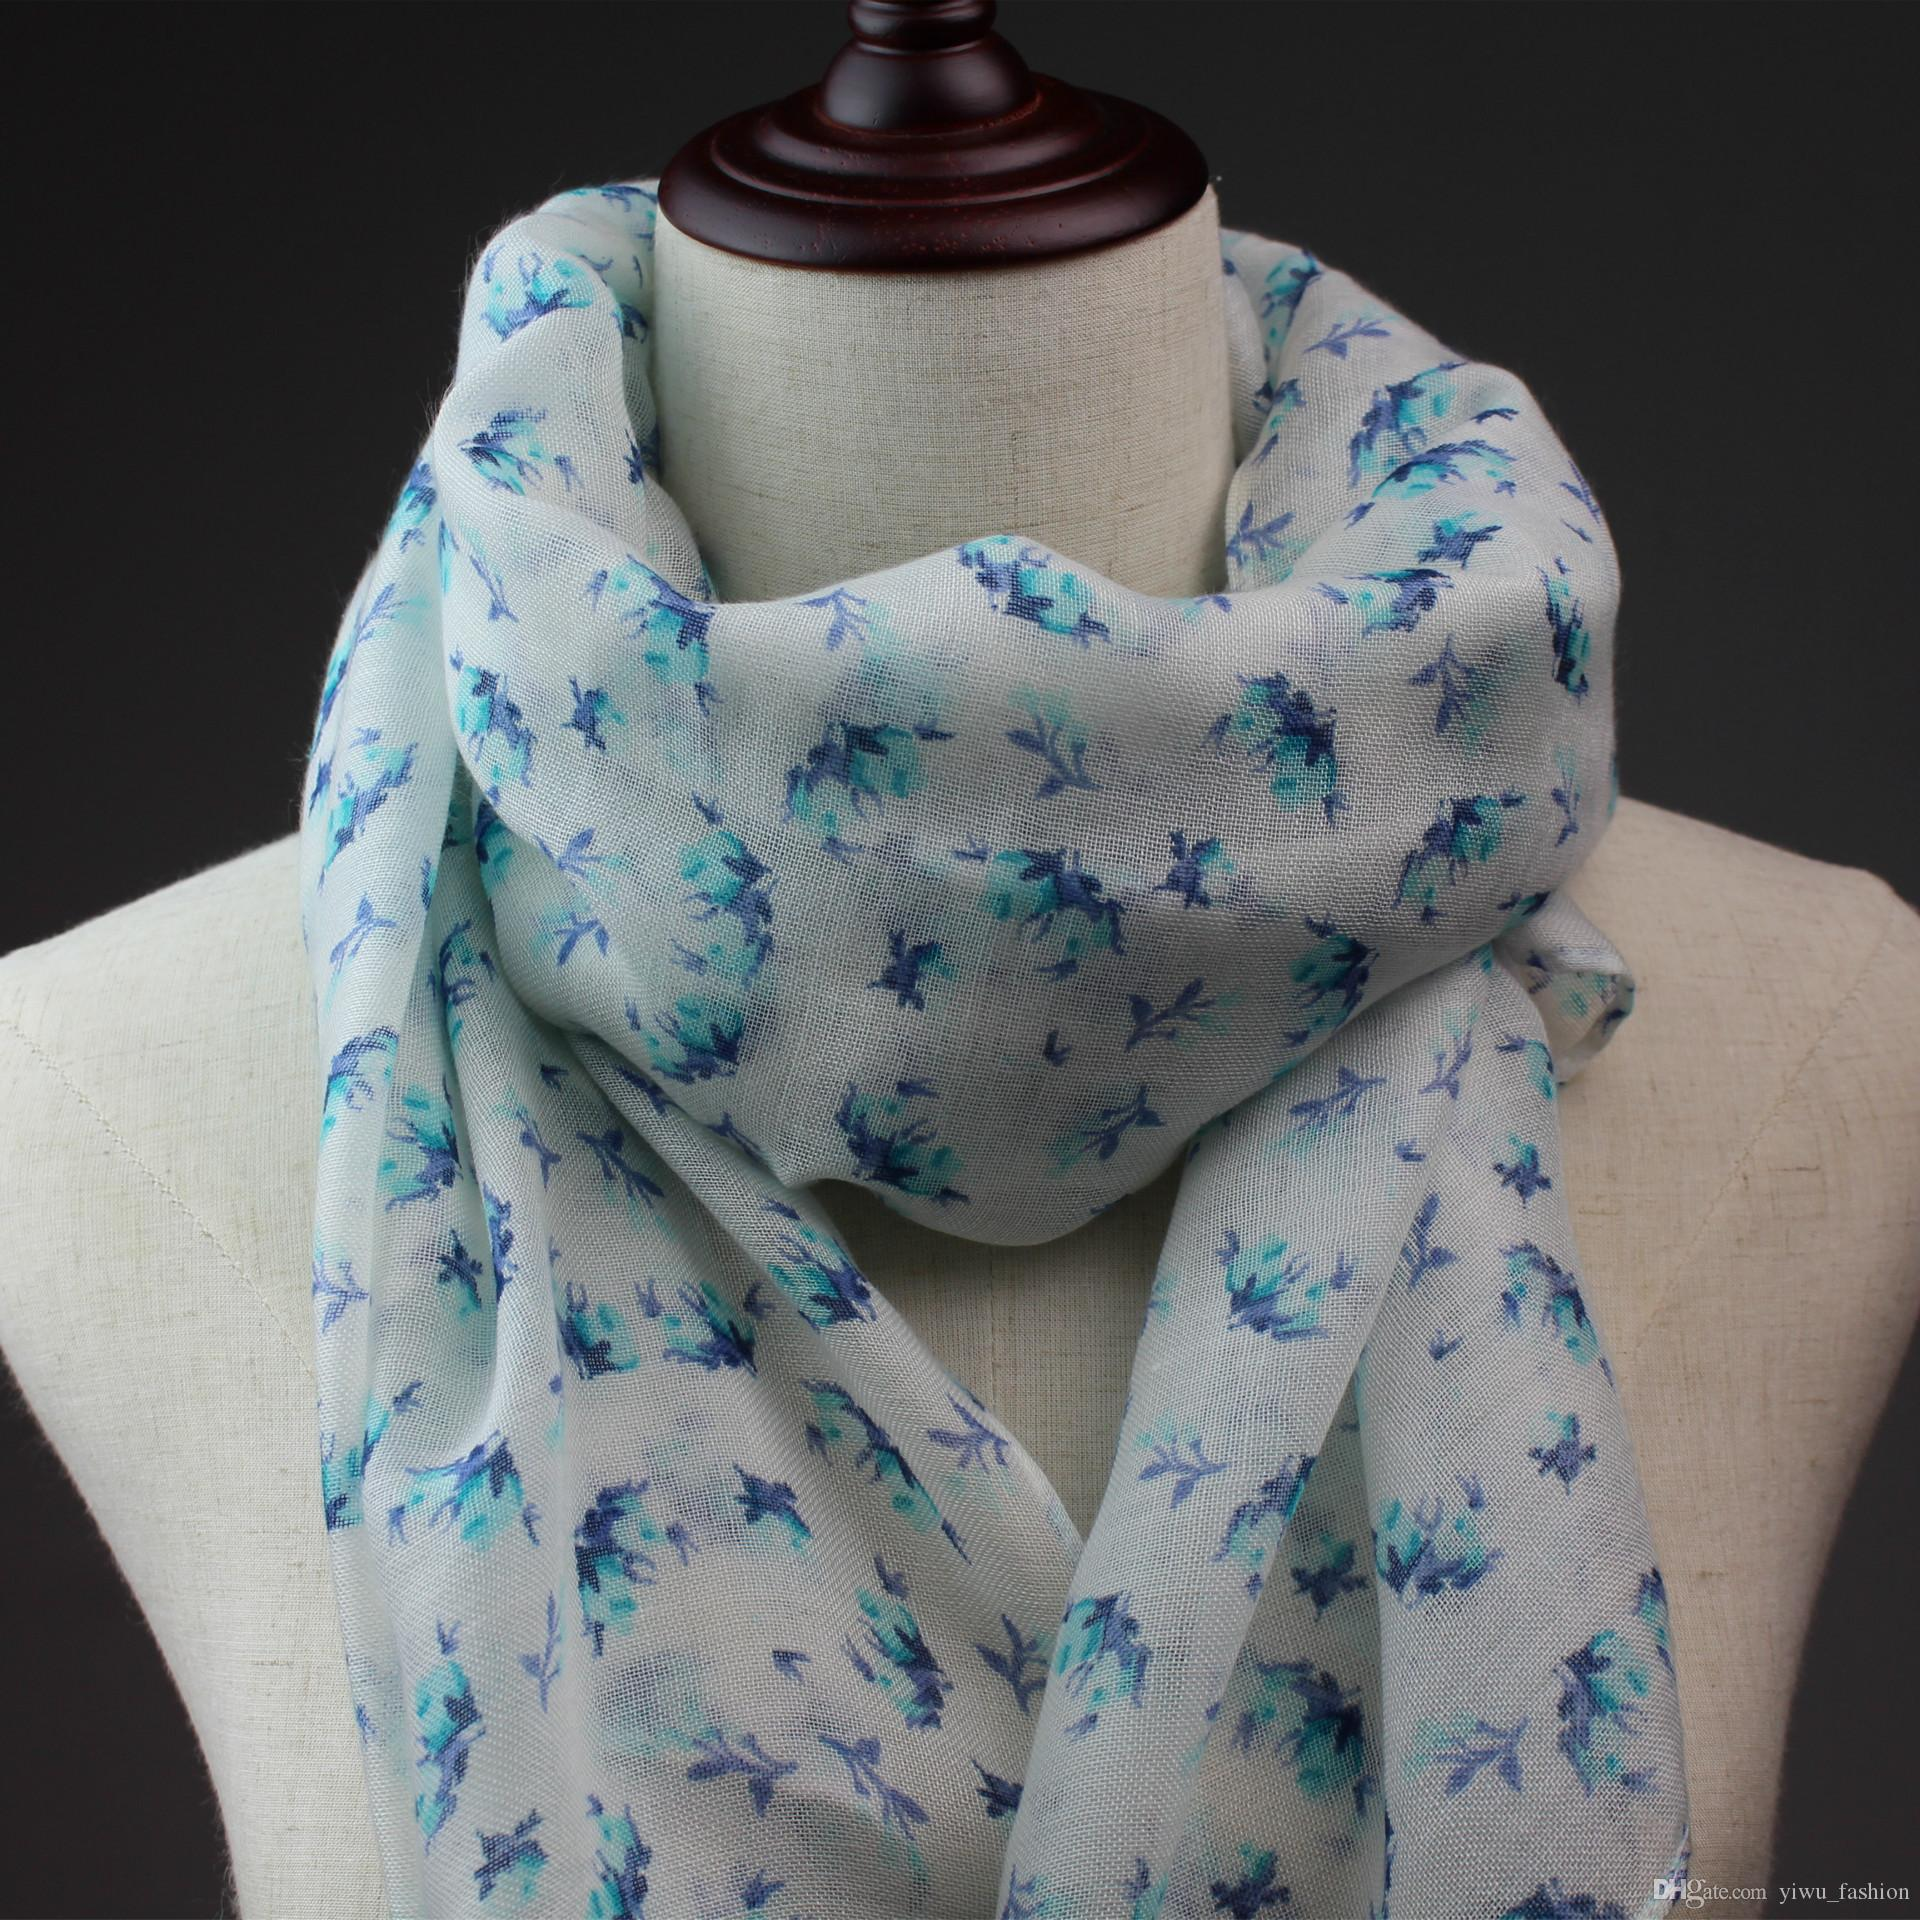 Small floral printed square cotton scarf spring style export orders